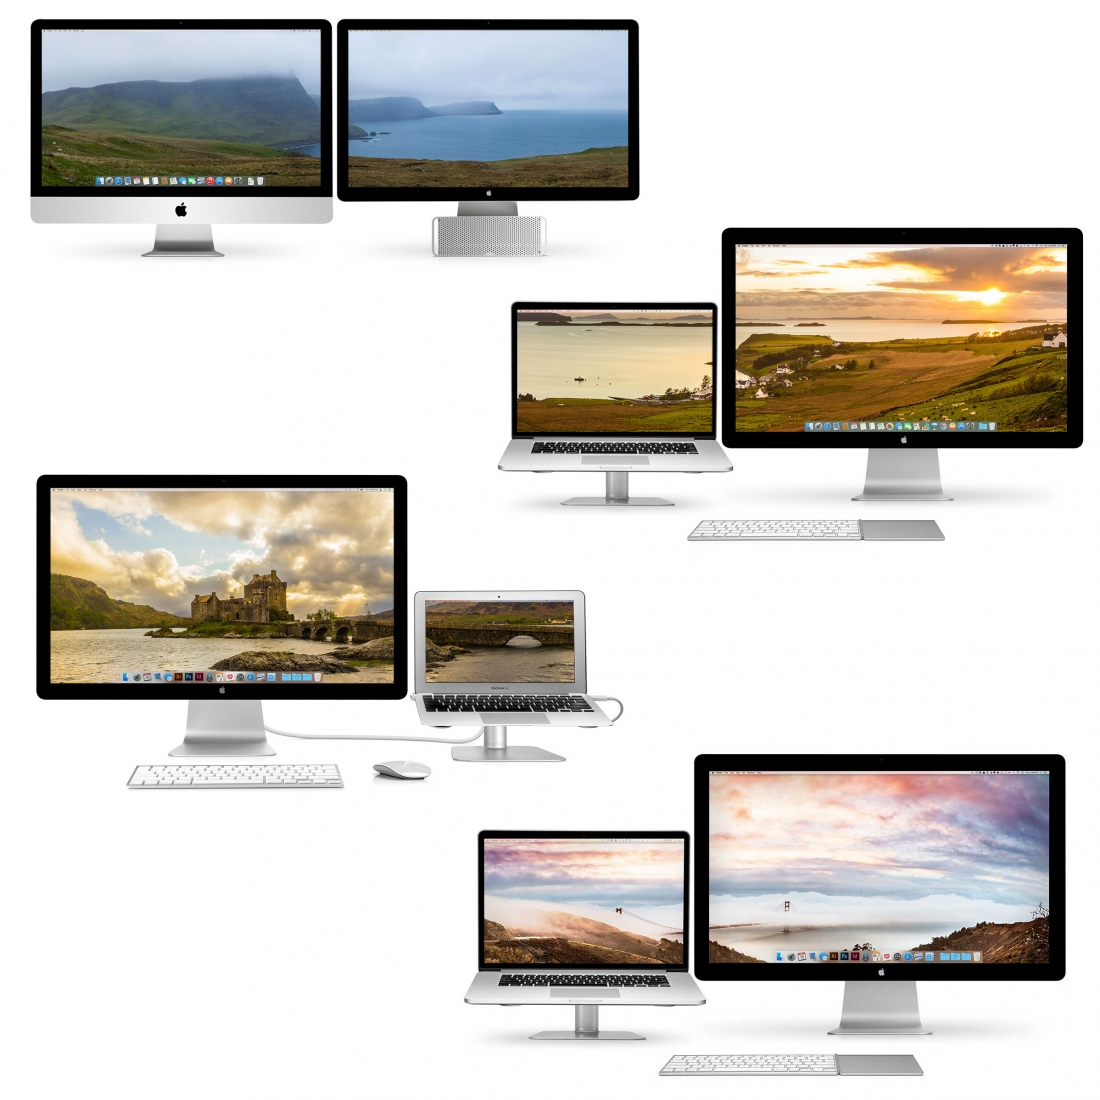 /tmo/cool_stuff_found/post/free-dual-display-wallpaper-for-your-macs